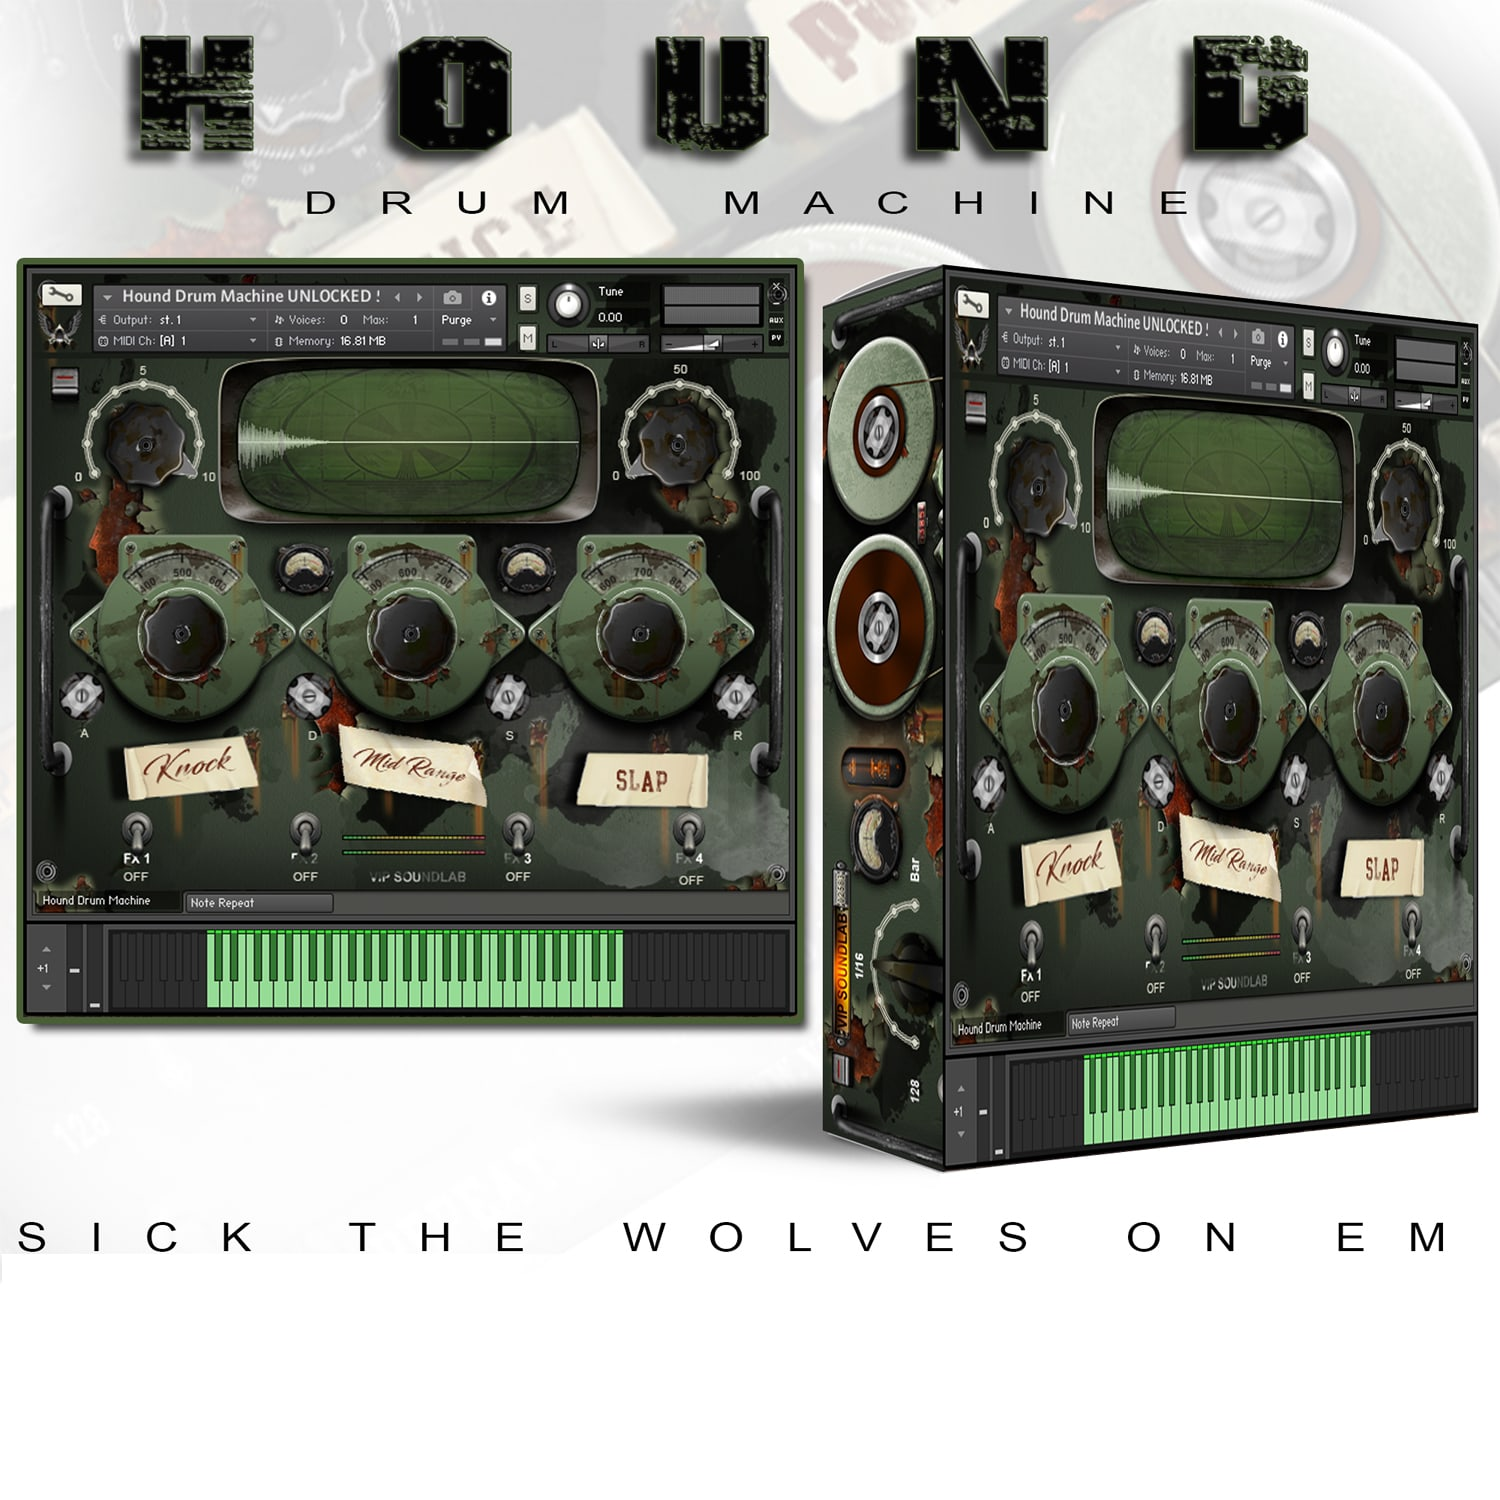 VIP SOUNDLAB Hound Drum Machine Kontakt 5